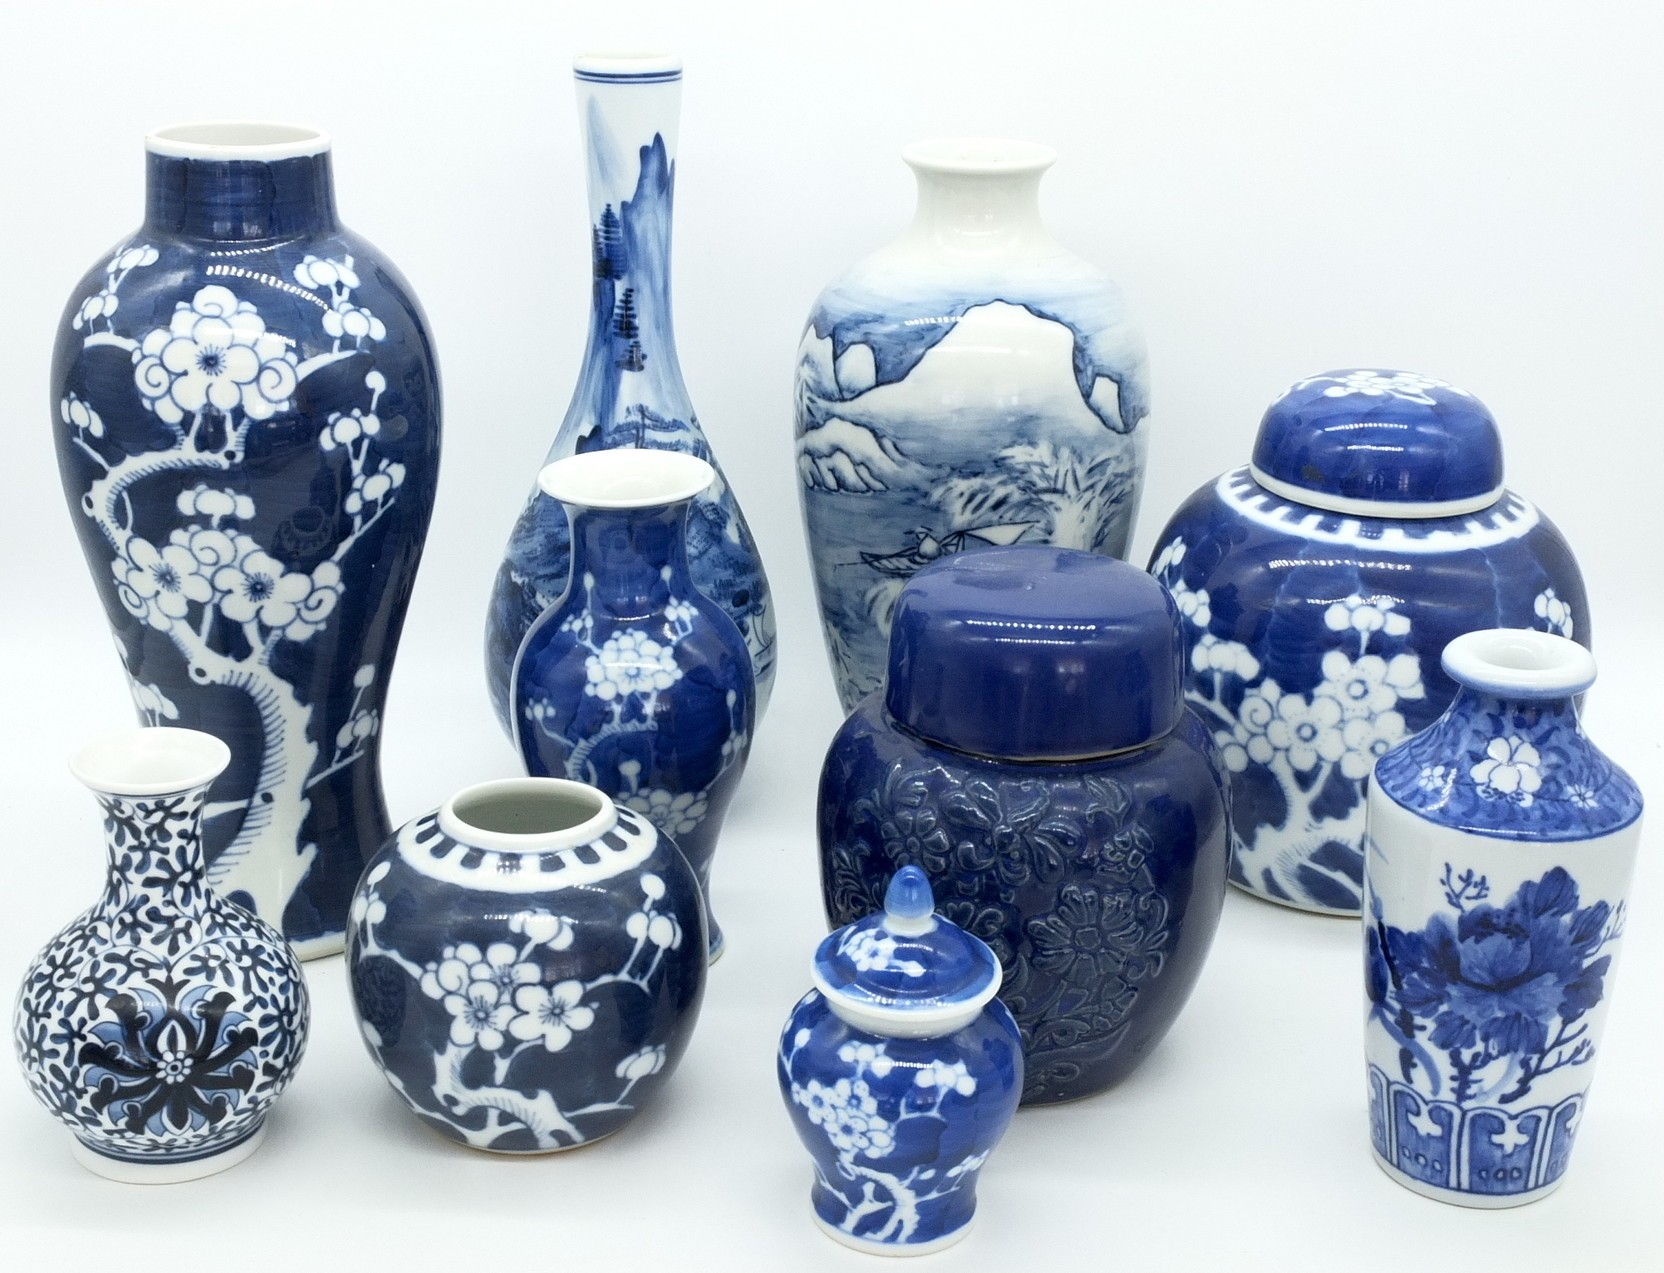 'Group of Oriental Blue and White Porcelain Gingers Jars and Vases'